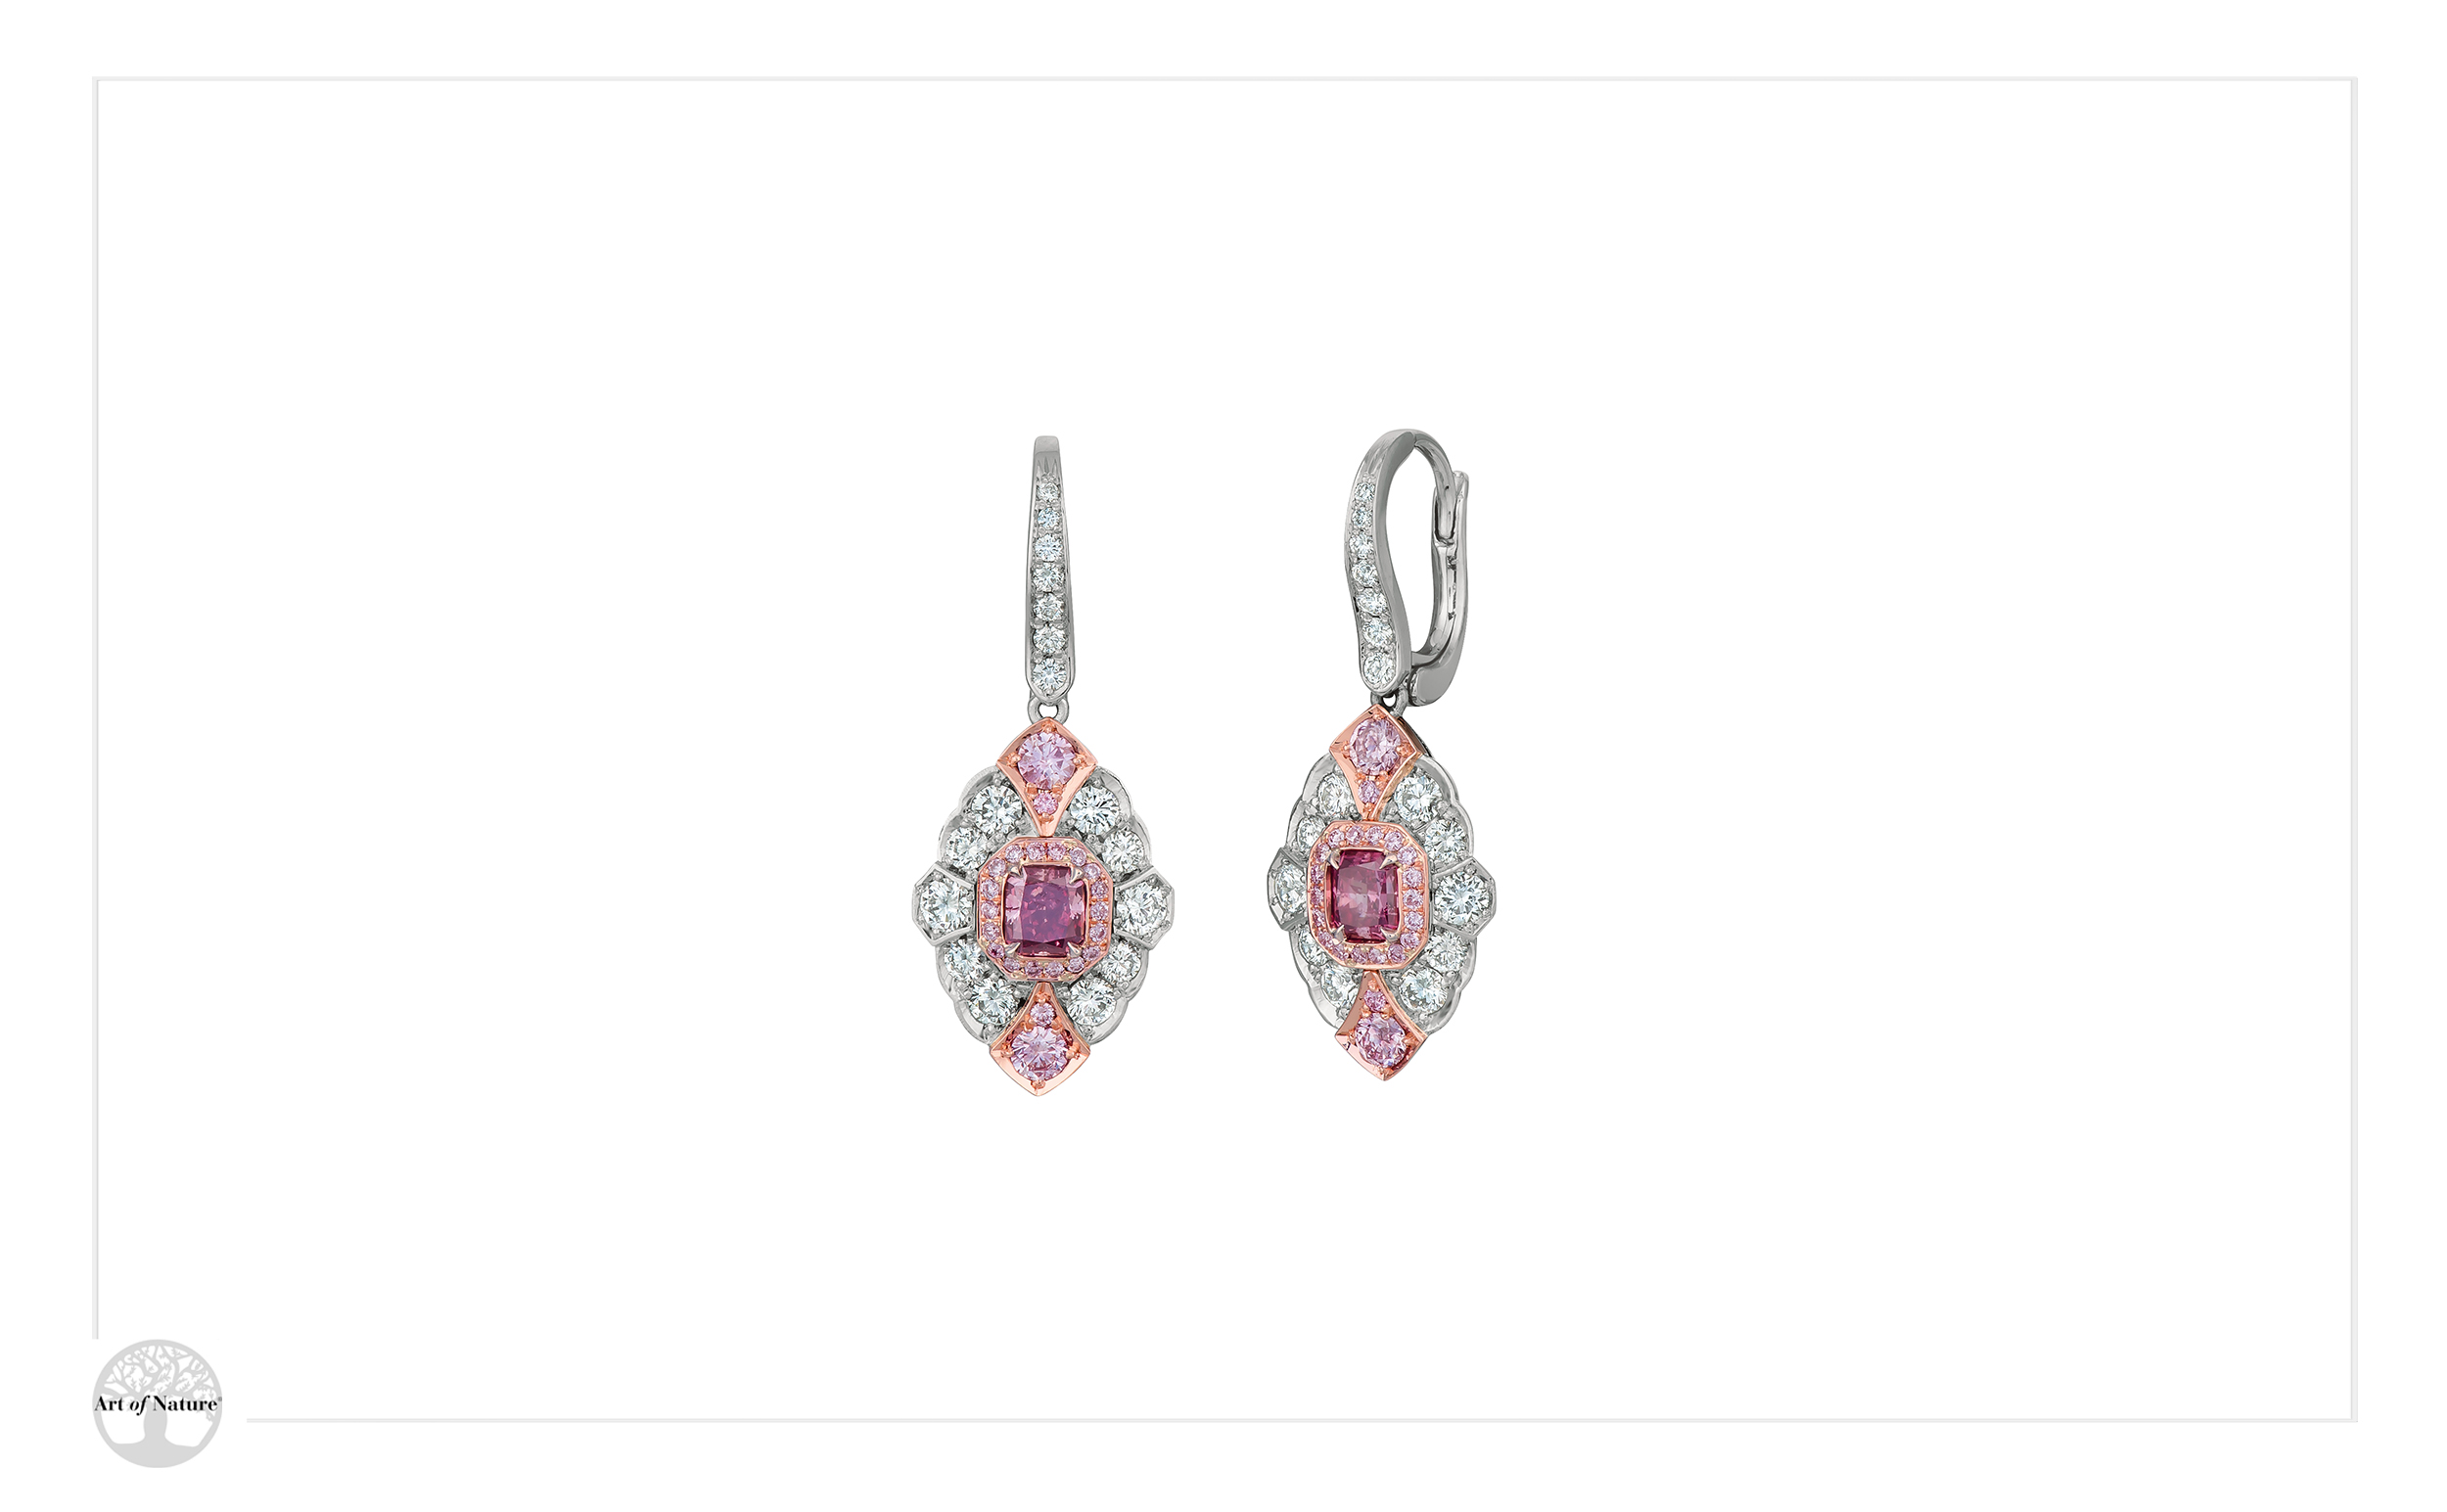 Scott West - Skyline earrings